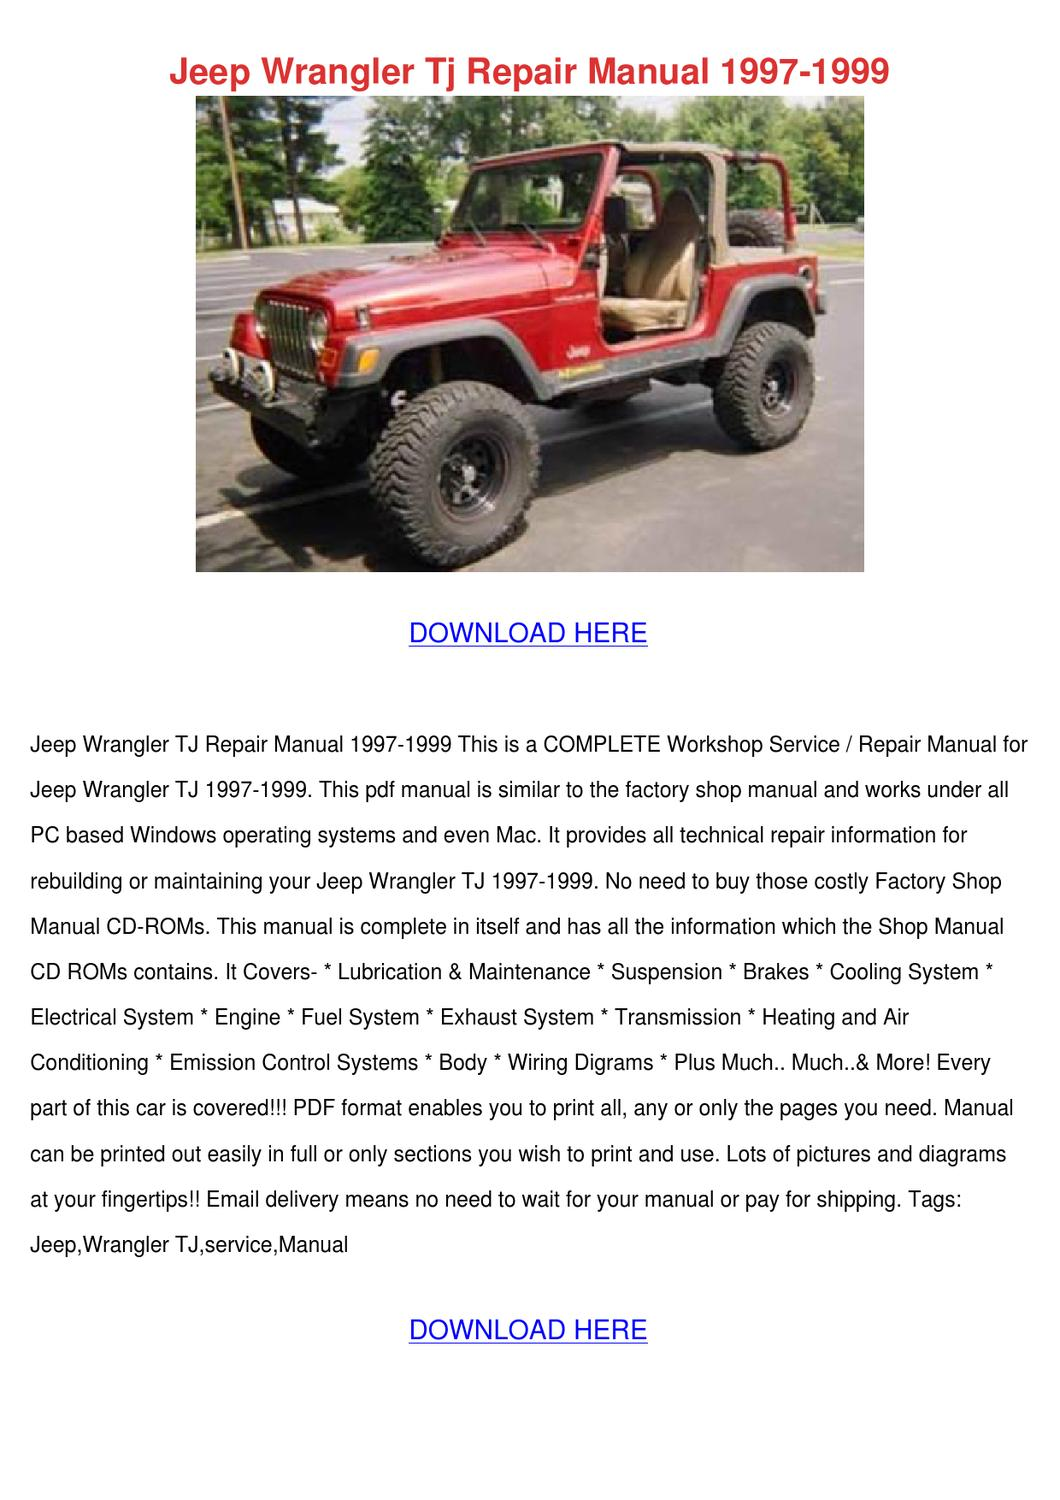 Jeep Wrangler Tj Repair Manual 1997 1999 By Frederickaeggleston Issuu Wiring Diagrams Sahara